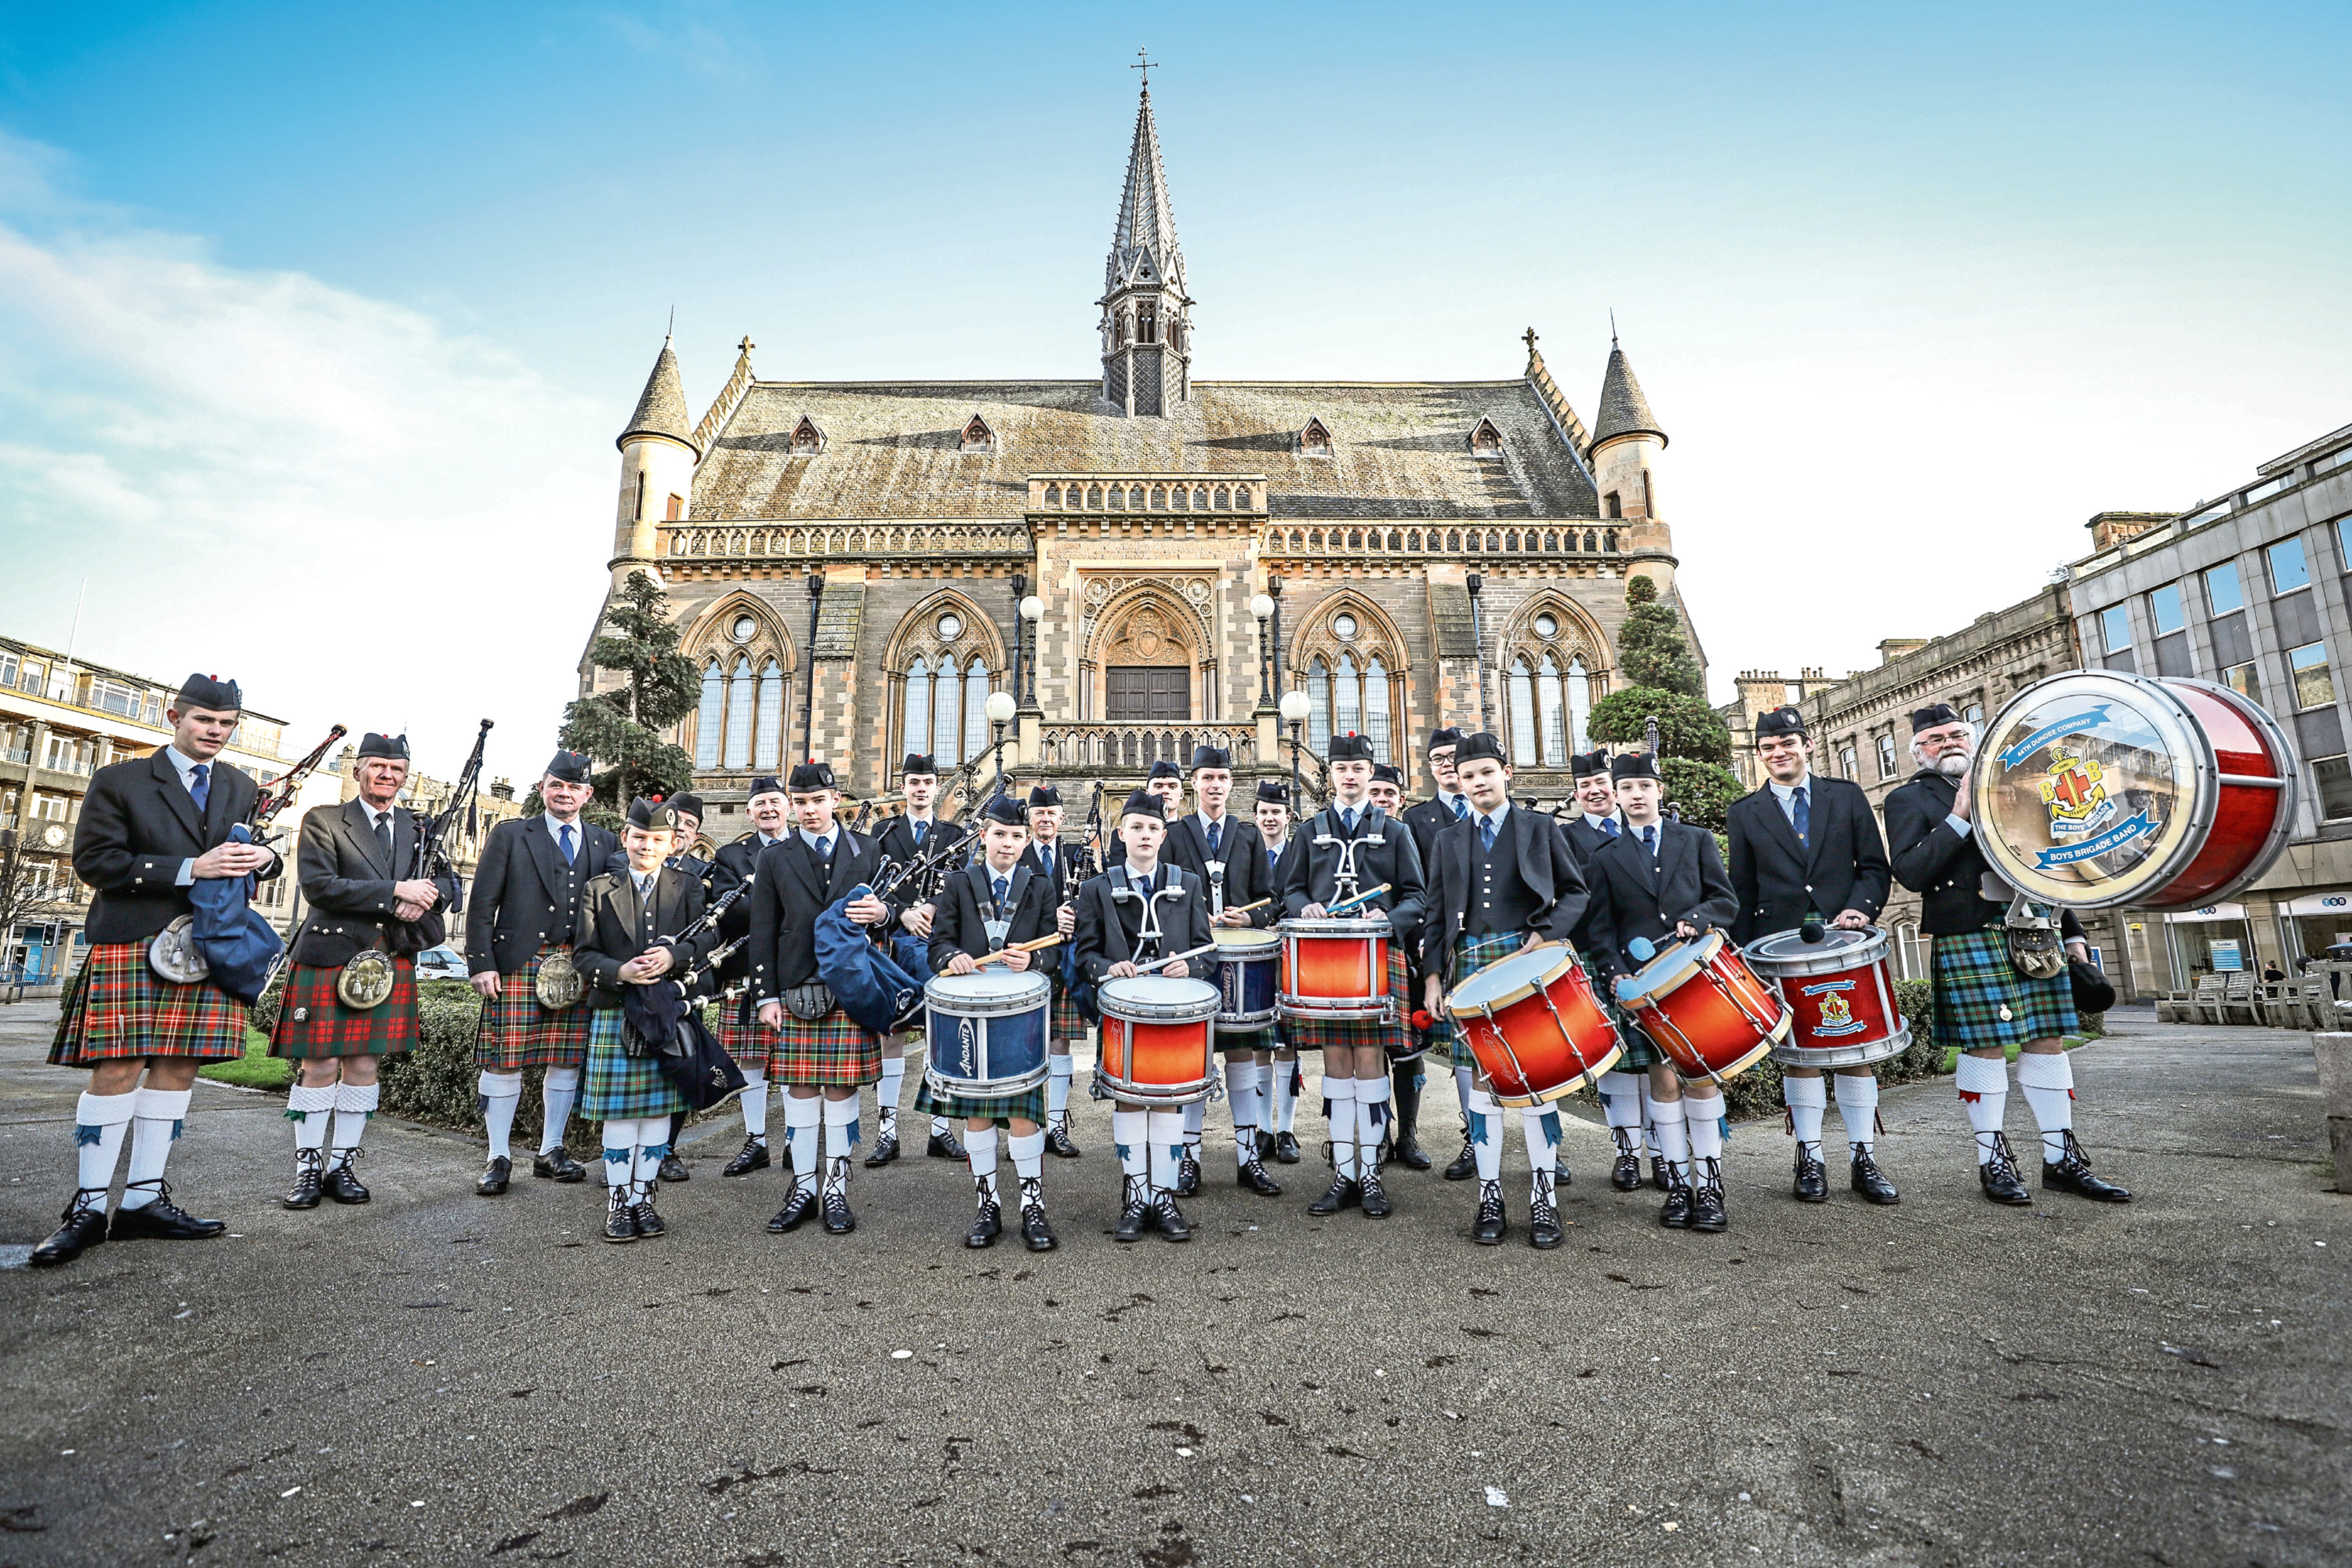 44th Dundee Company, Boys Brigade Pipe Band playing at the McManus first foot event.